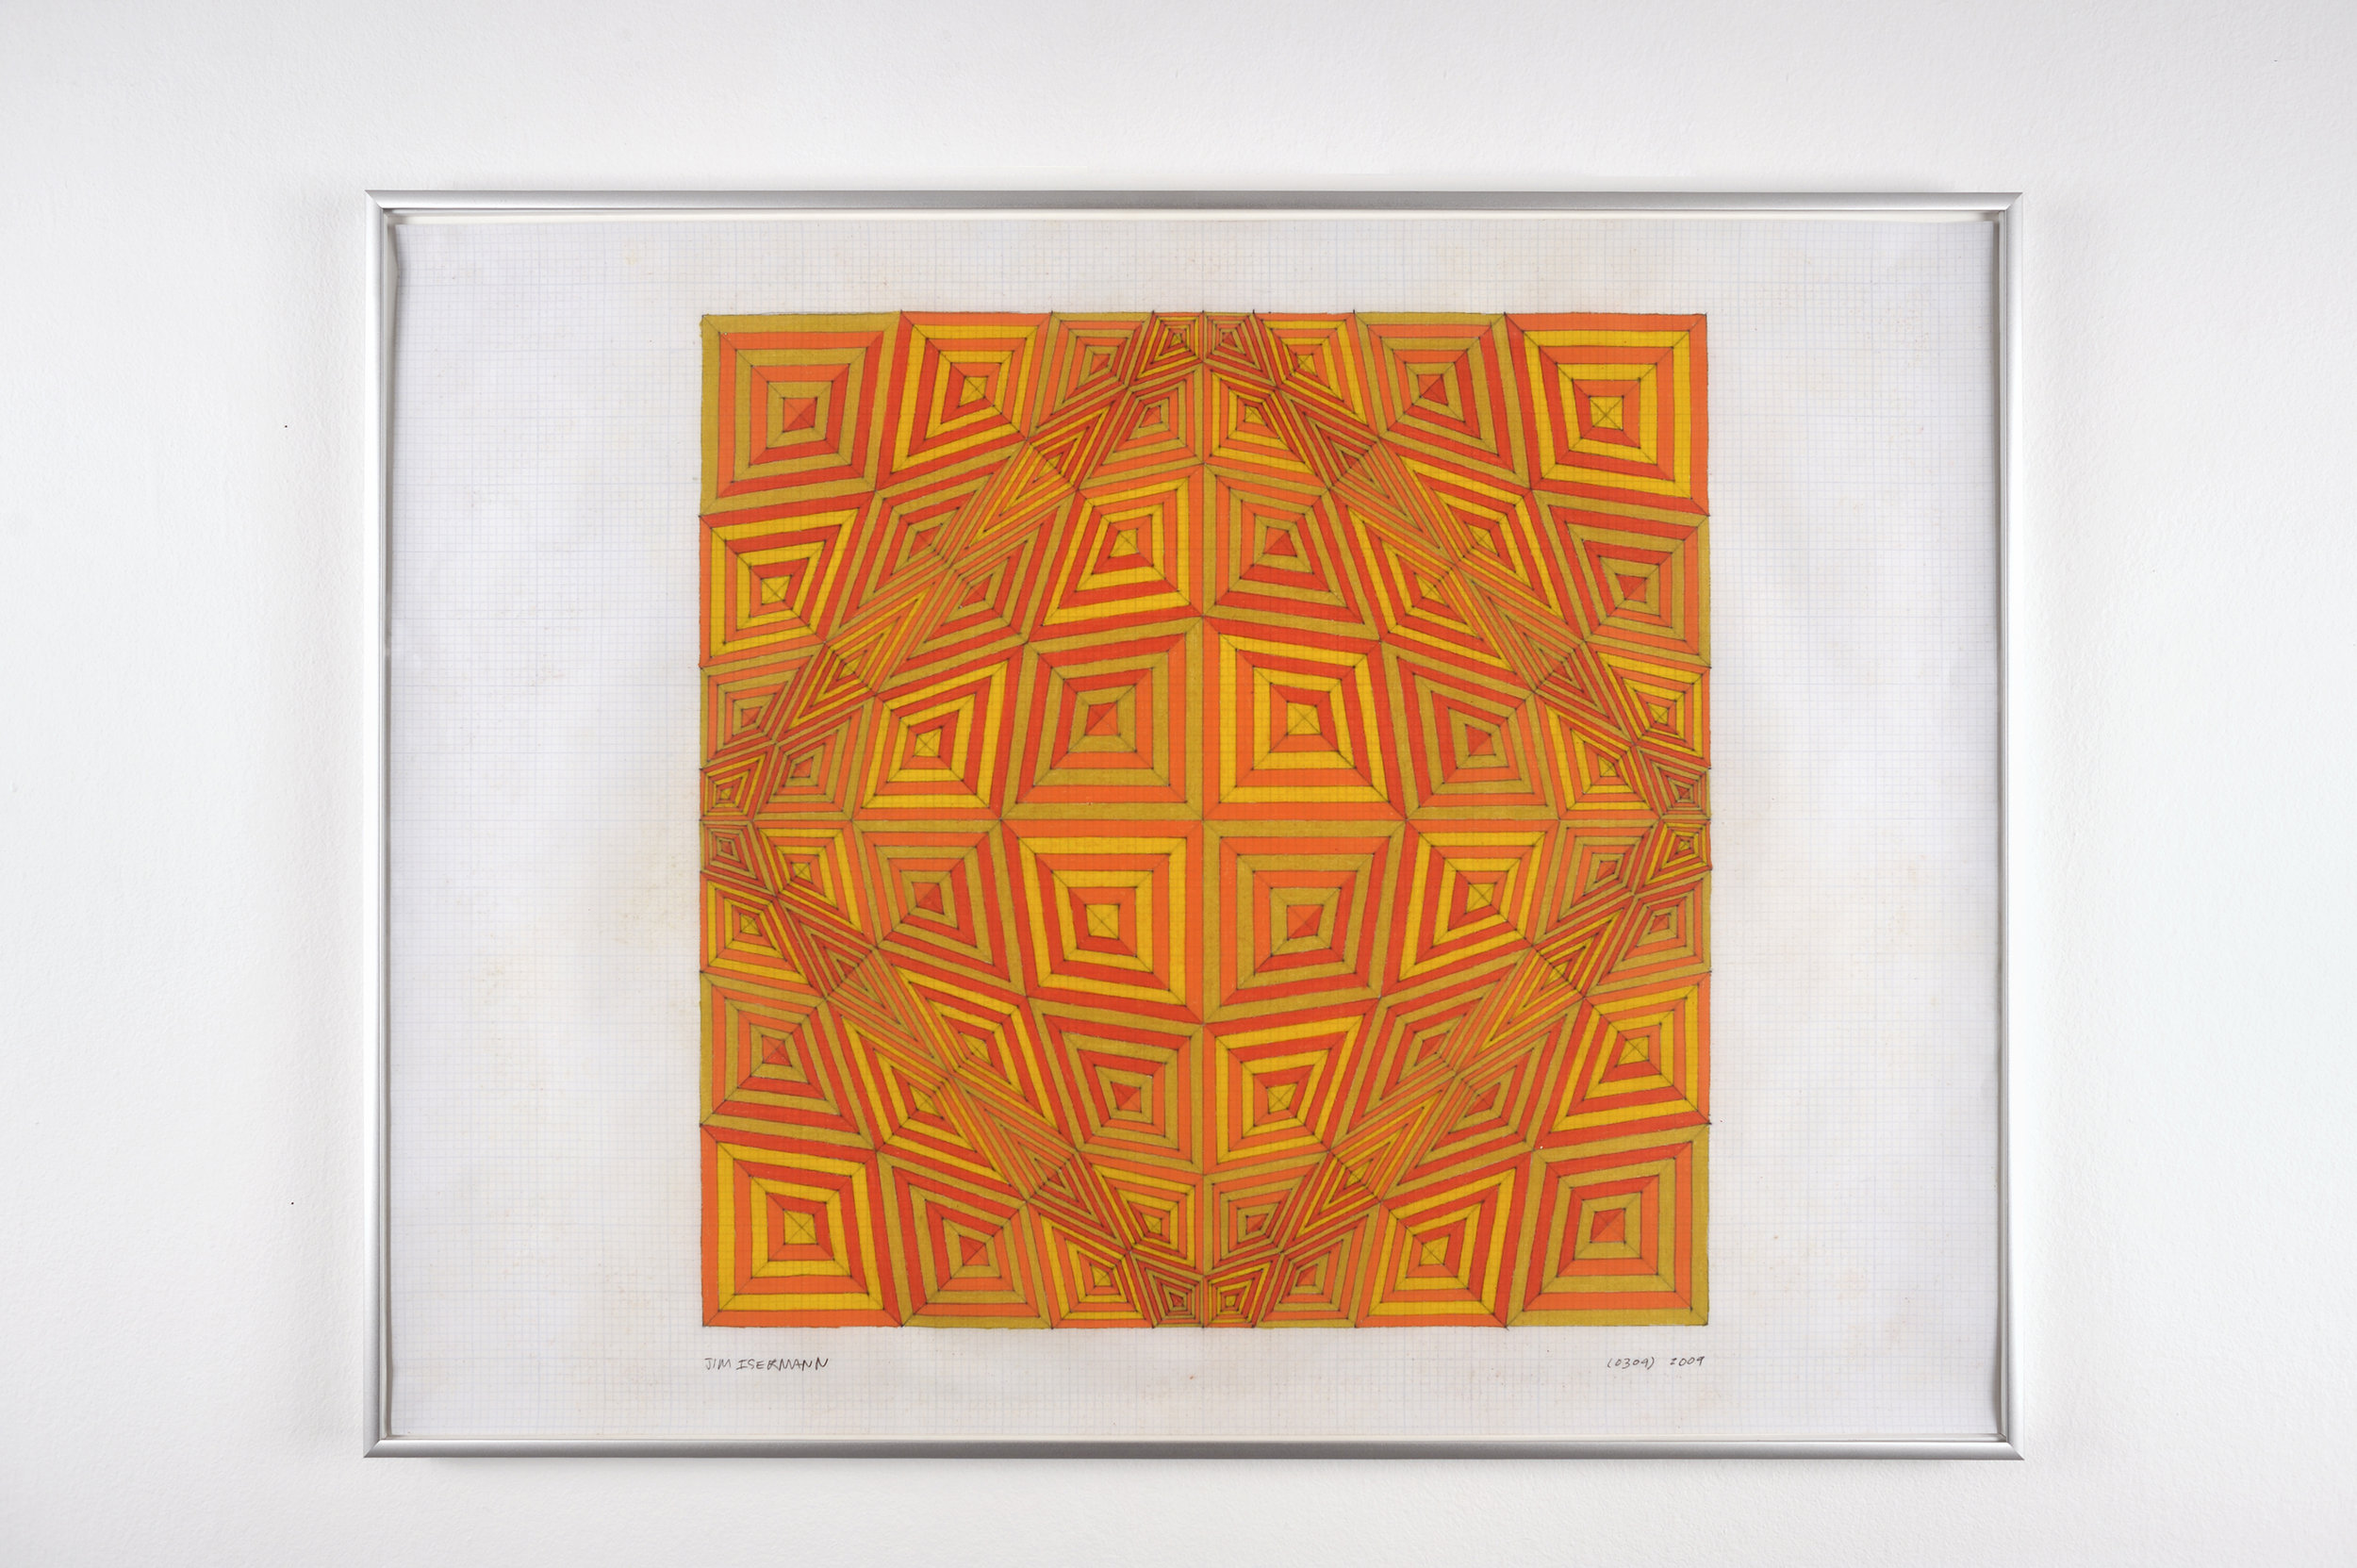 Untitled (0309), 2009 colored pencil on grid paper 47,5 x 62,7 cm - 18 3/4 x 24 5/8 inches